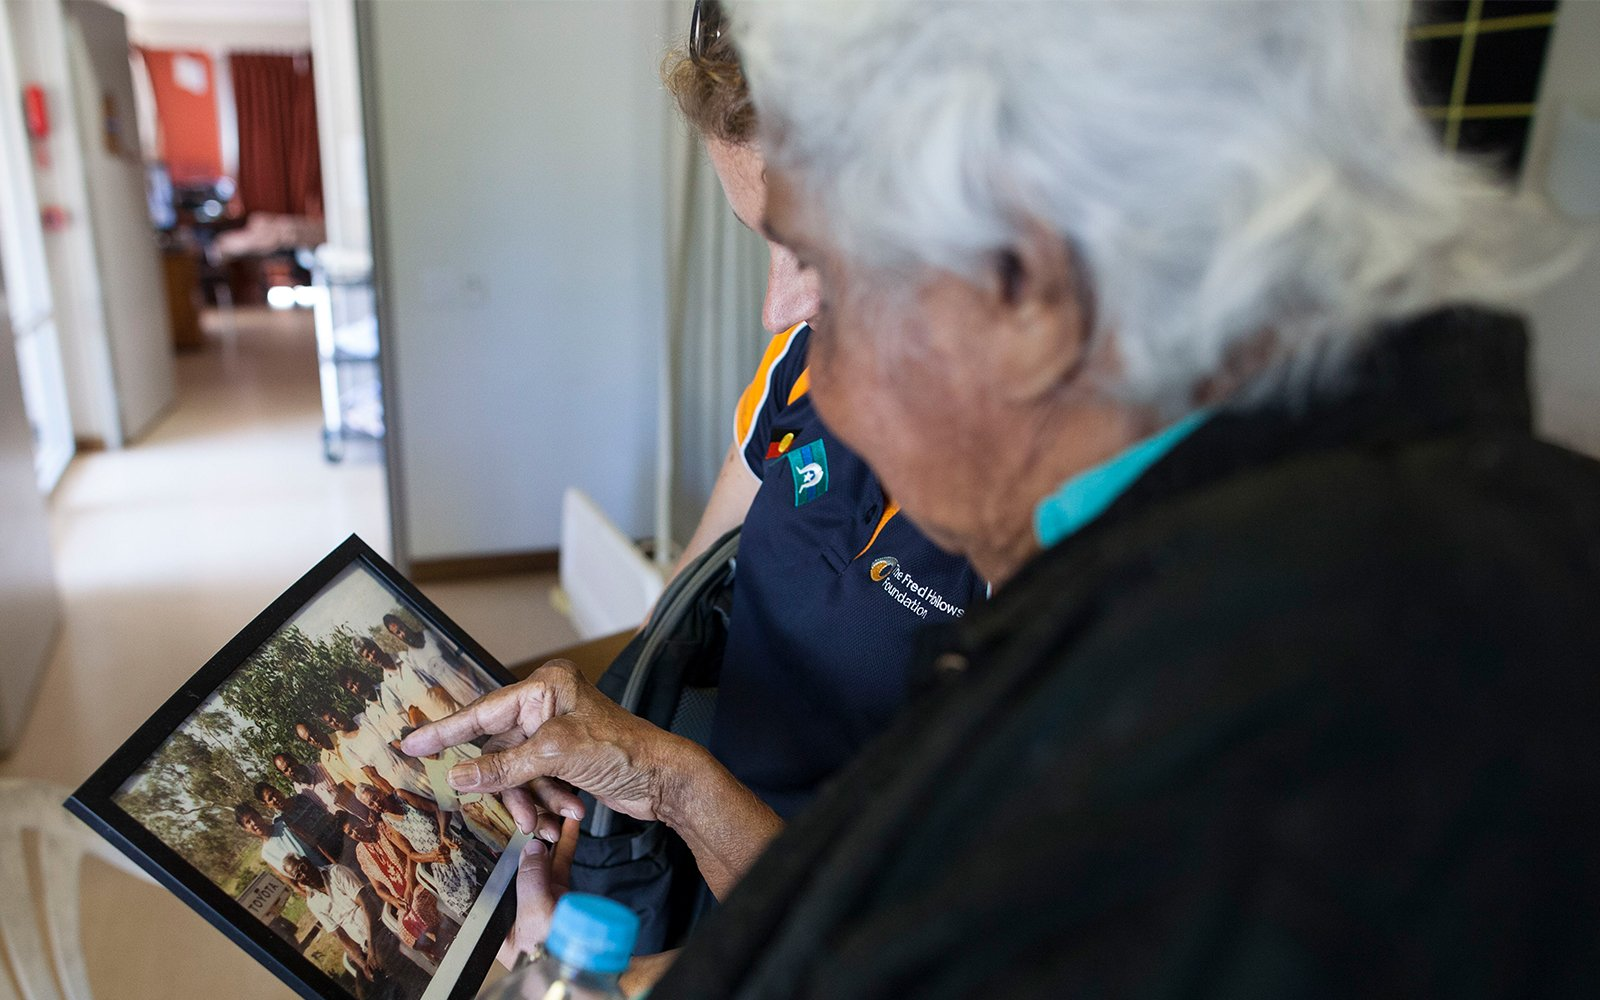 Indigenous Health. Tracey and Ipad